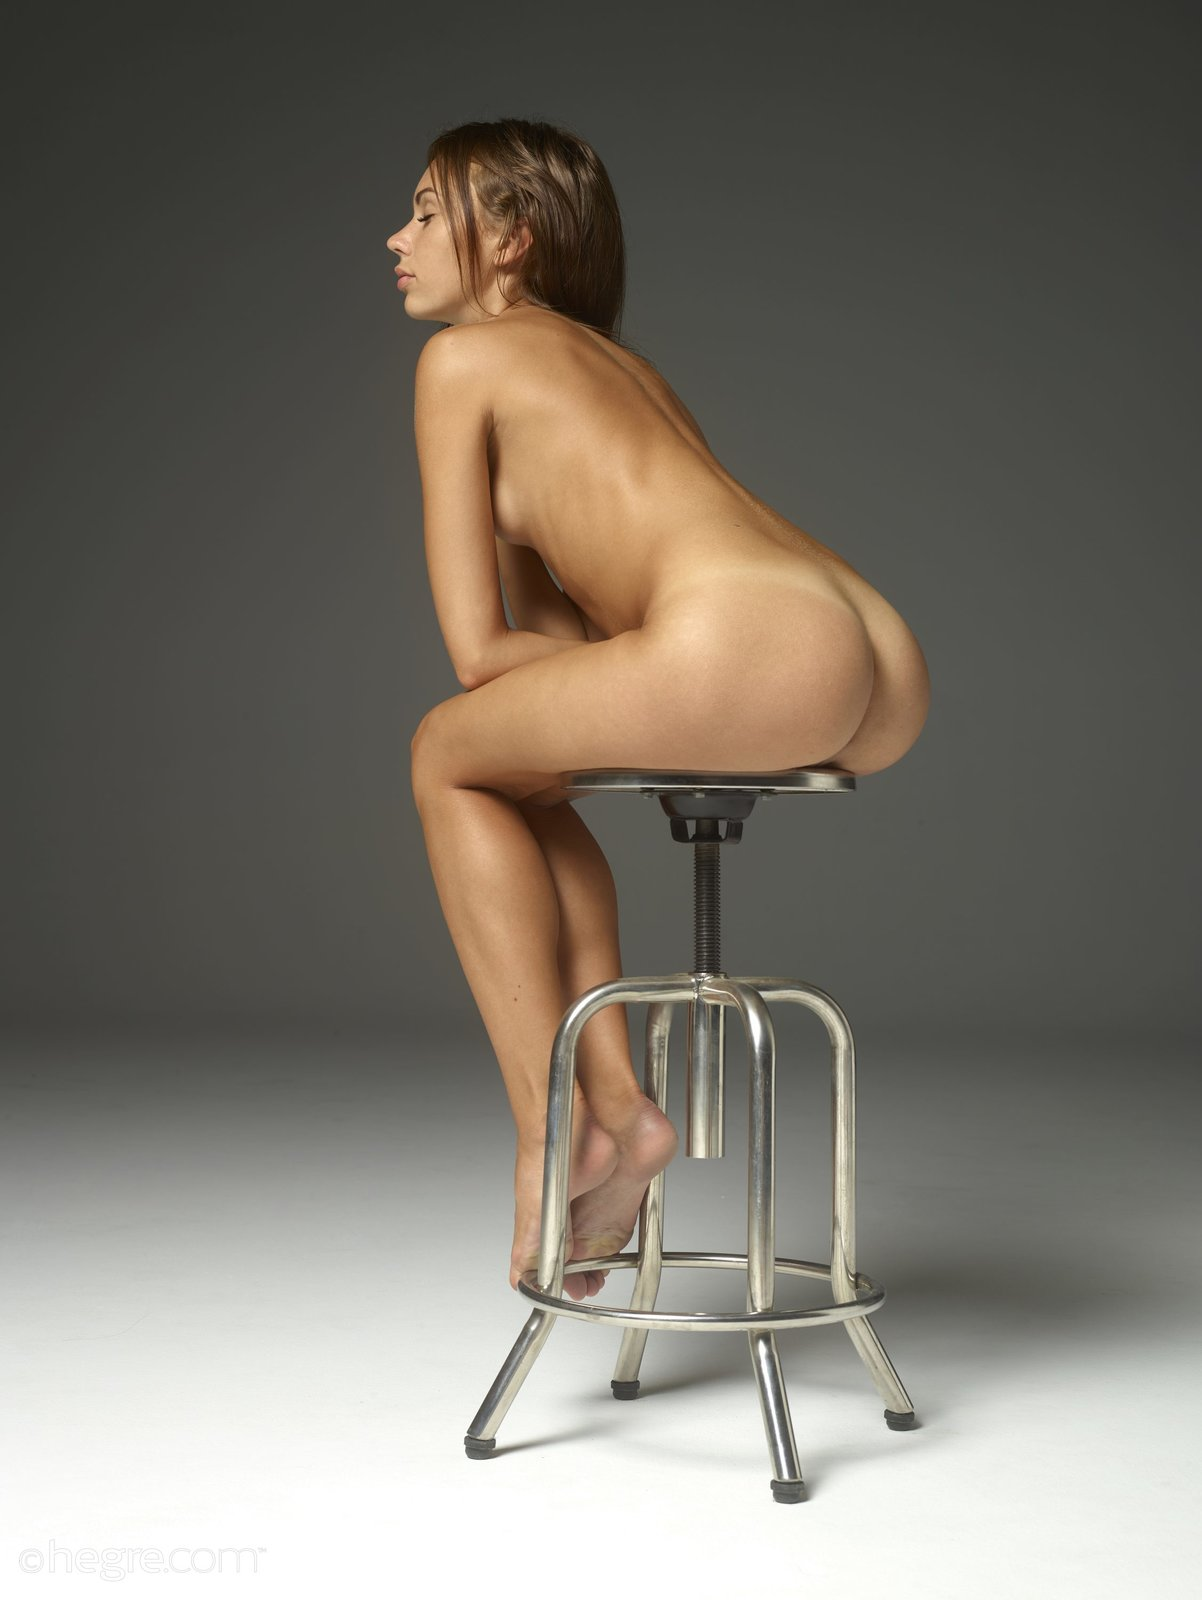 Mexican chair nude, crystal dawn nude